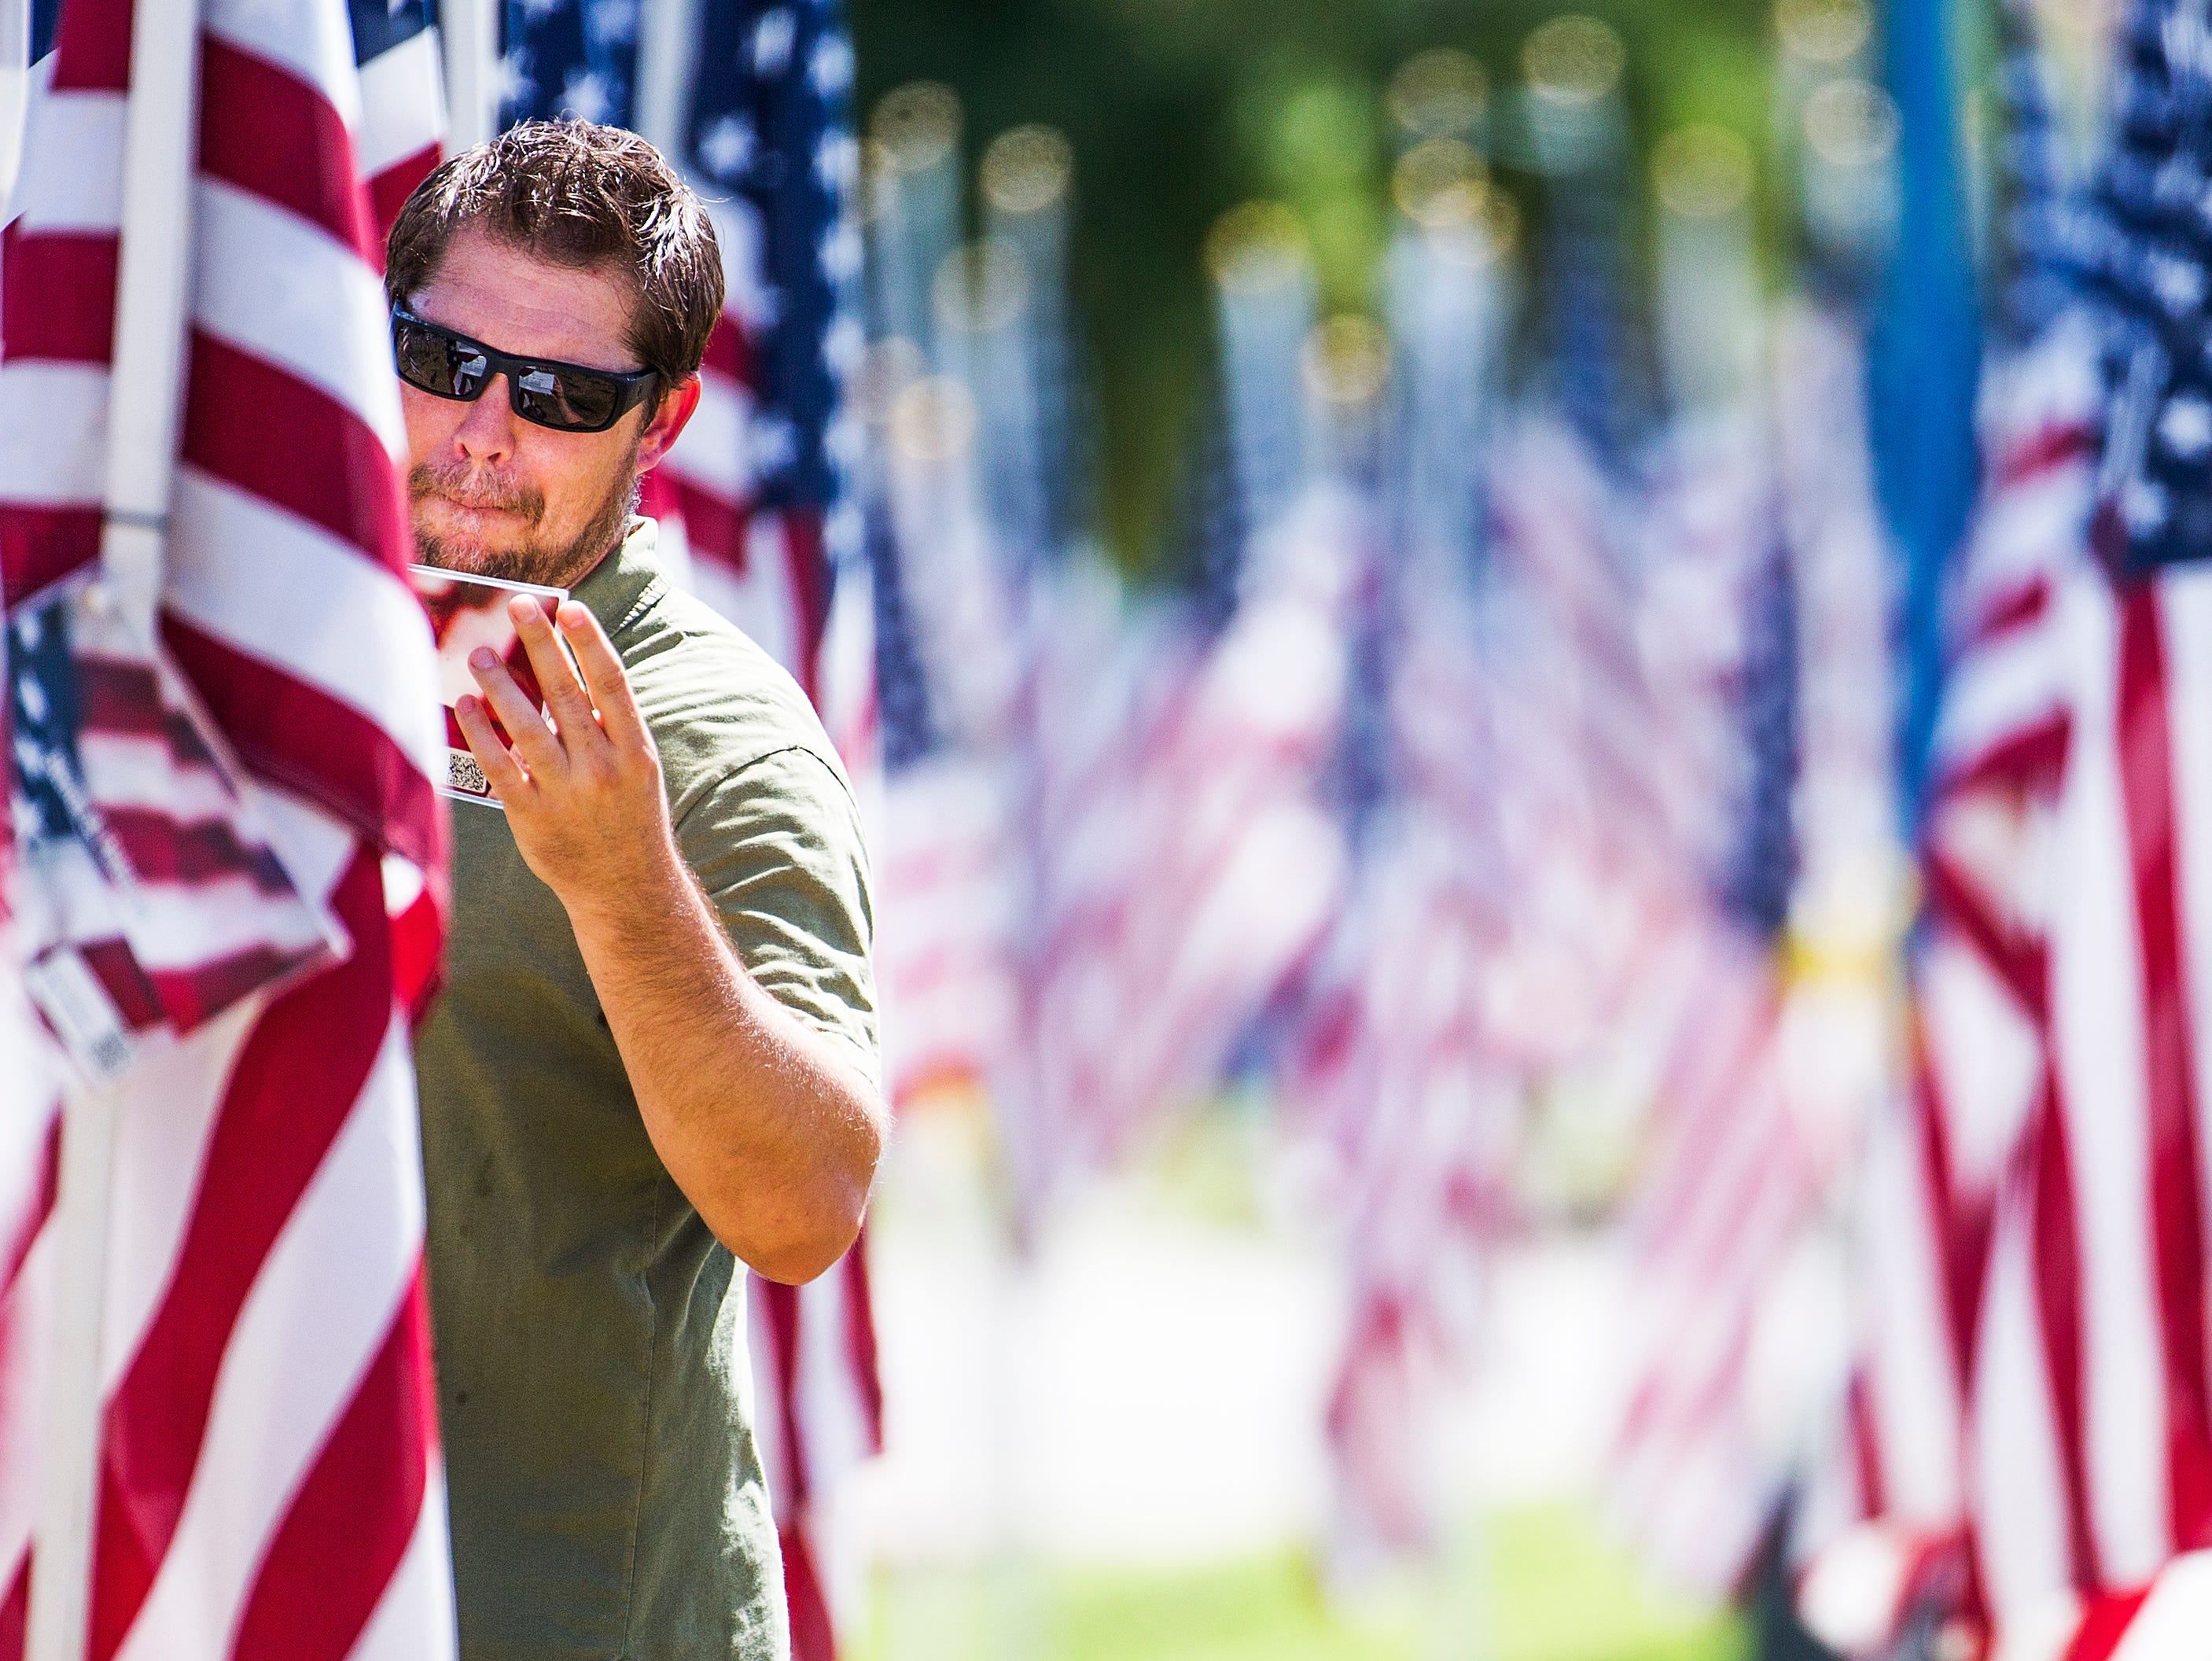 David Manzer, 43, Mesa, listens to a podcast about the Navy SEAL who killed Osama bin Laden as he reads the names of people killed during the 9-11 attacks. Manzer spent his lunch hour walking through the Healing Field, a memorial of almost 3,000 flags planted to honor those killed on Sept. 11, 2001.